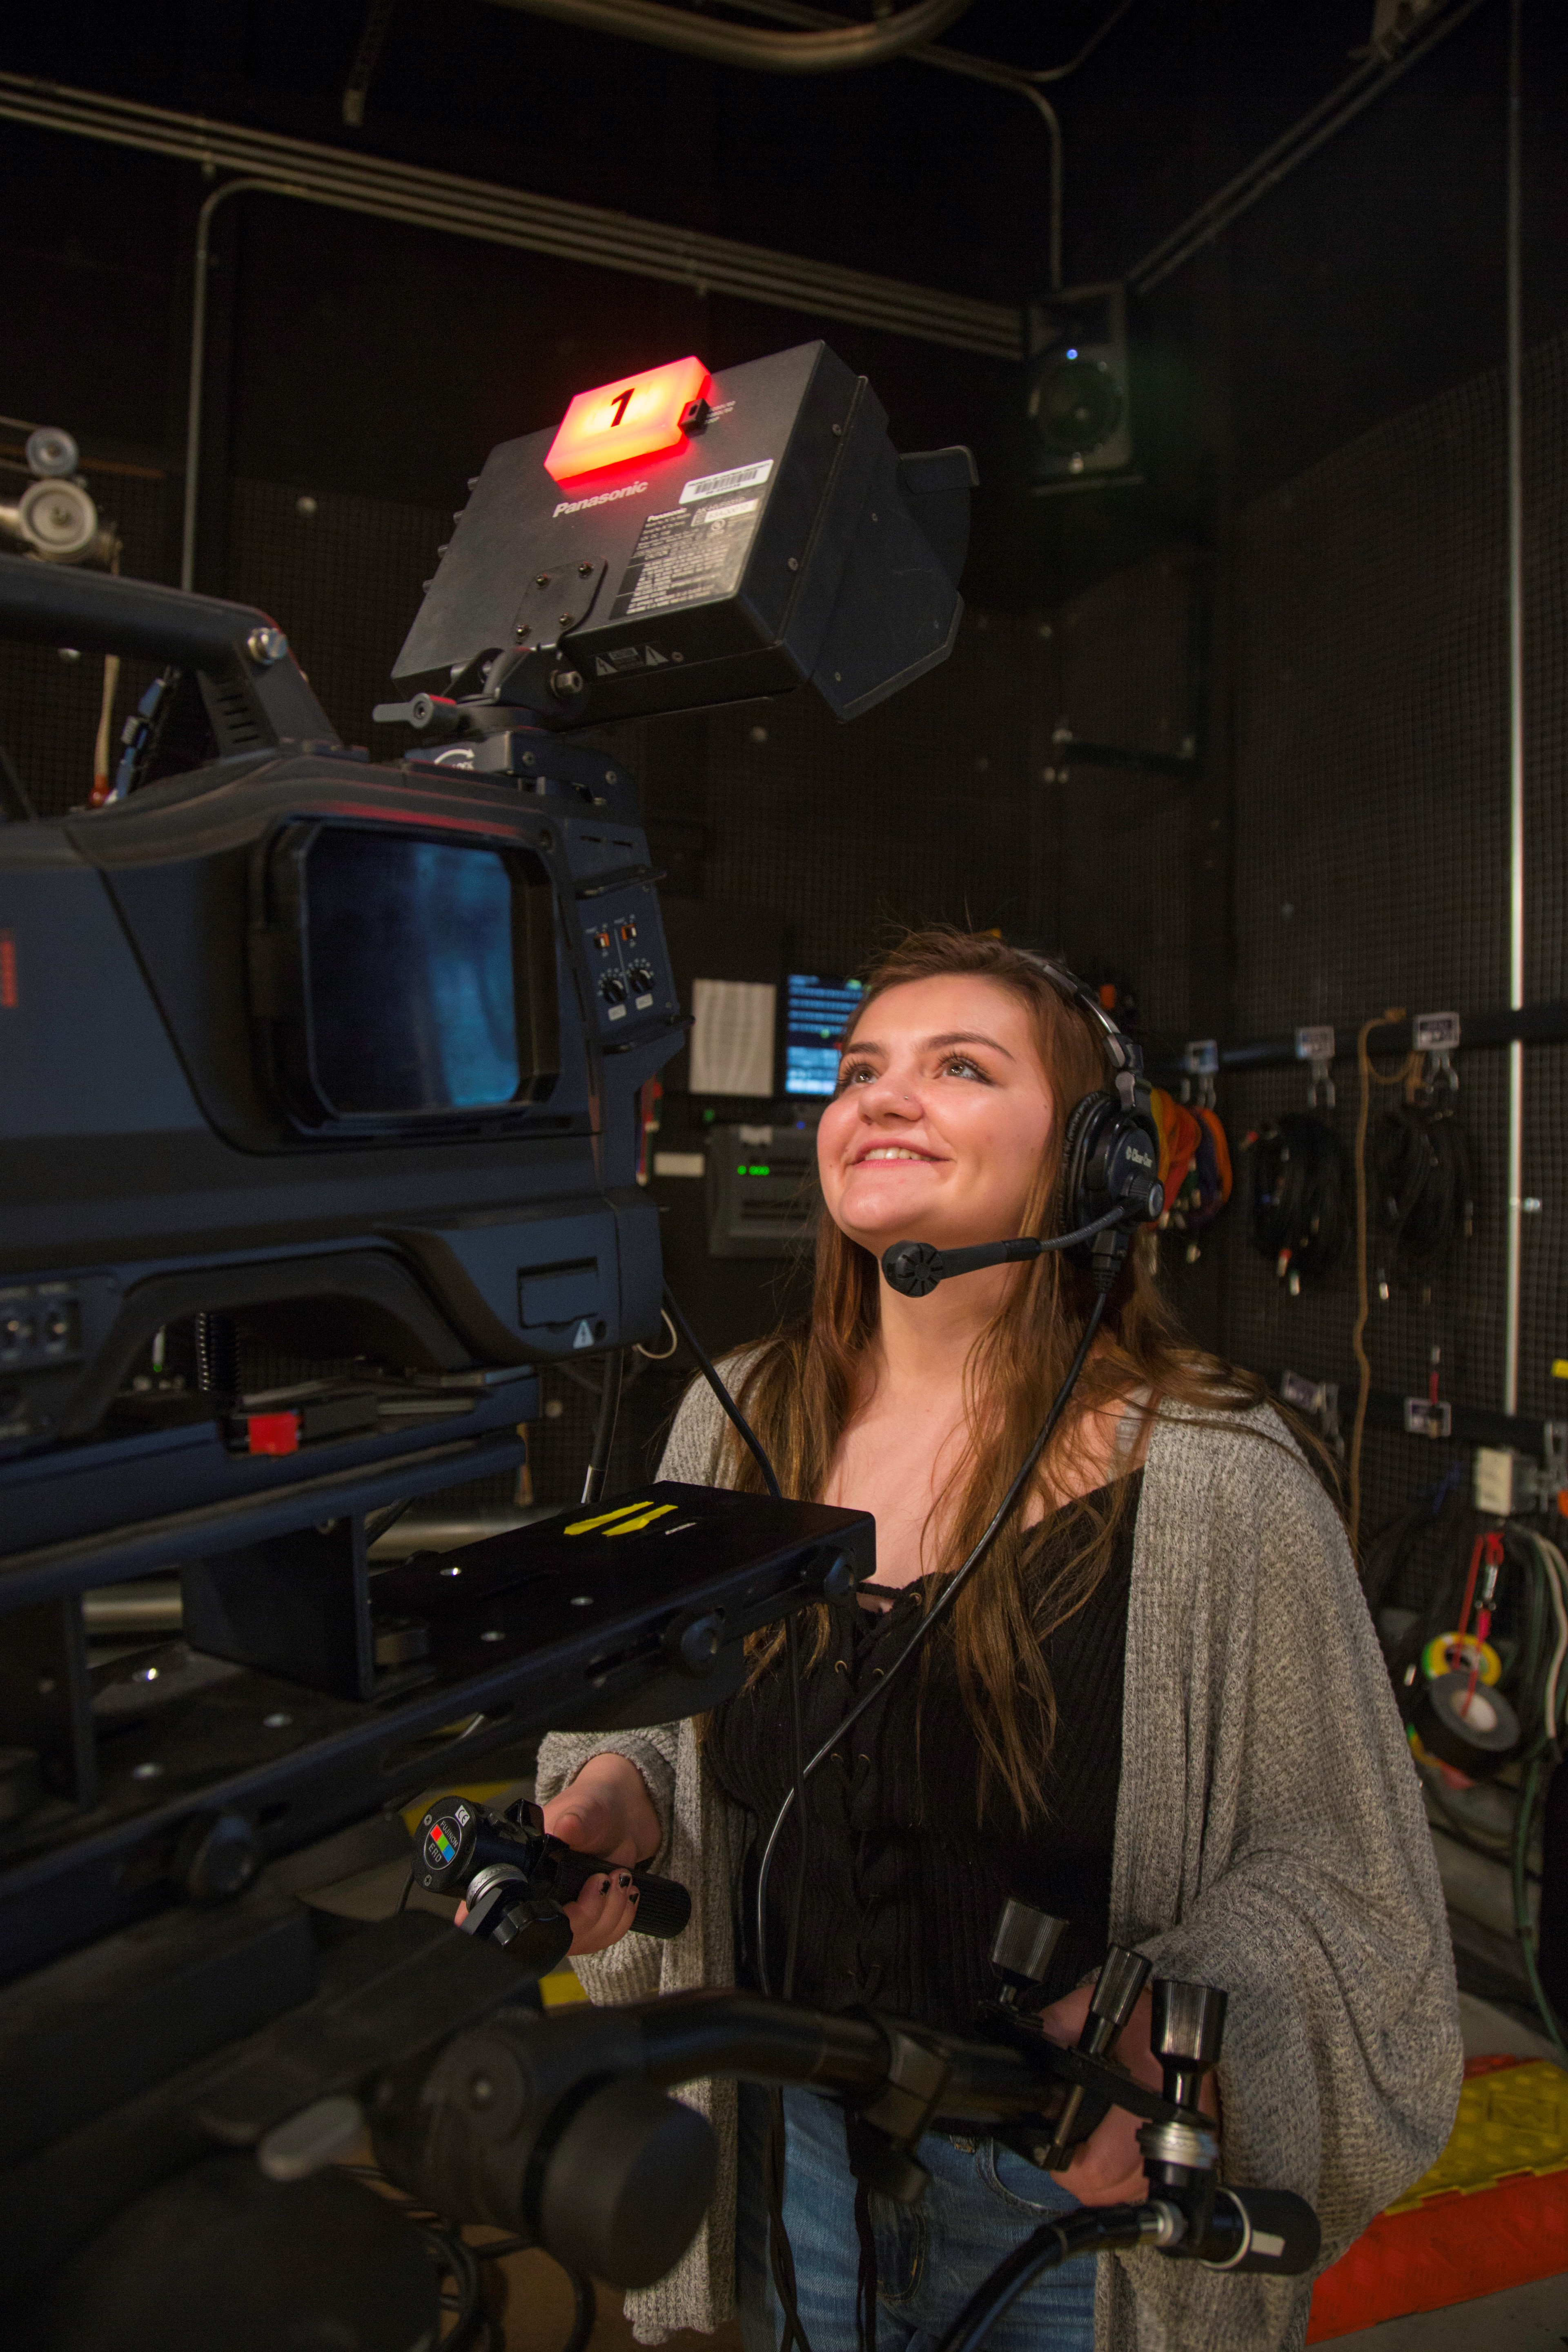 Female Dodge College student behind the camera.